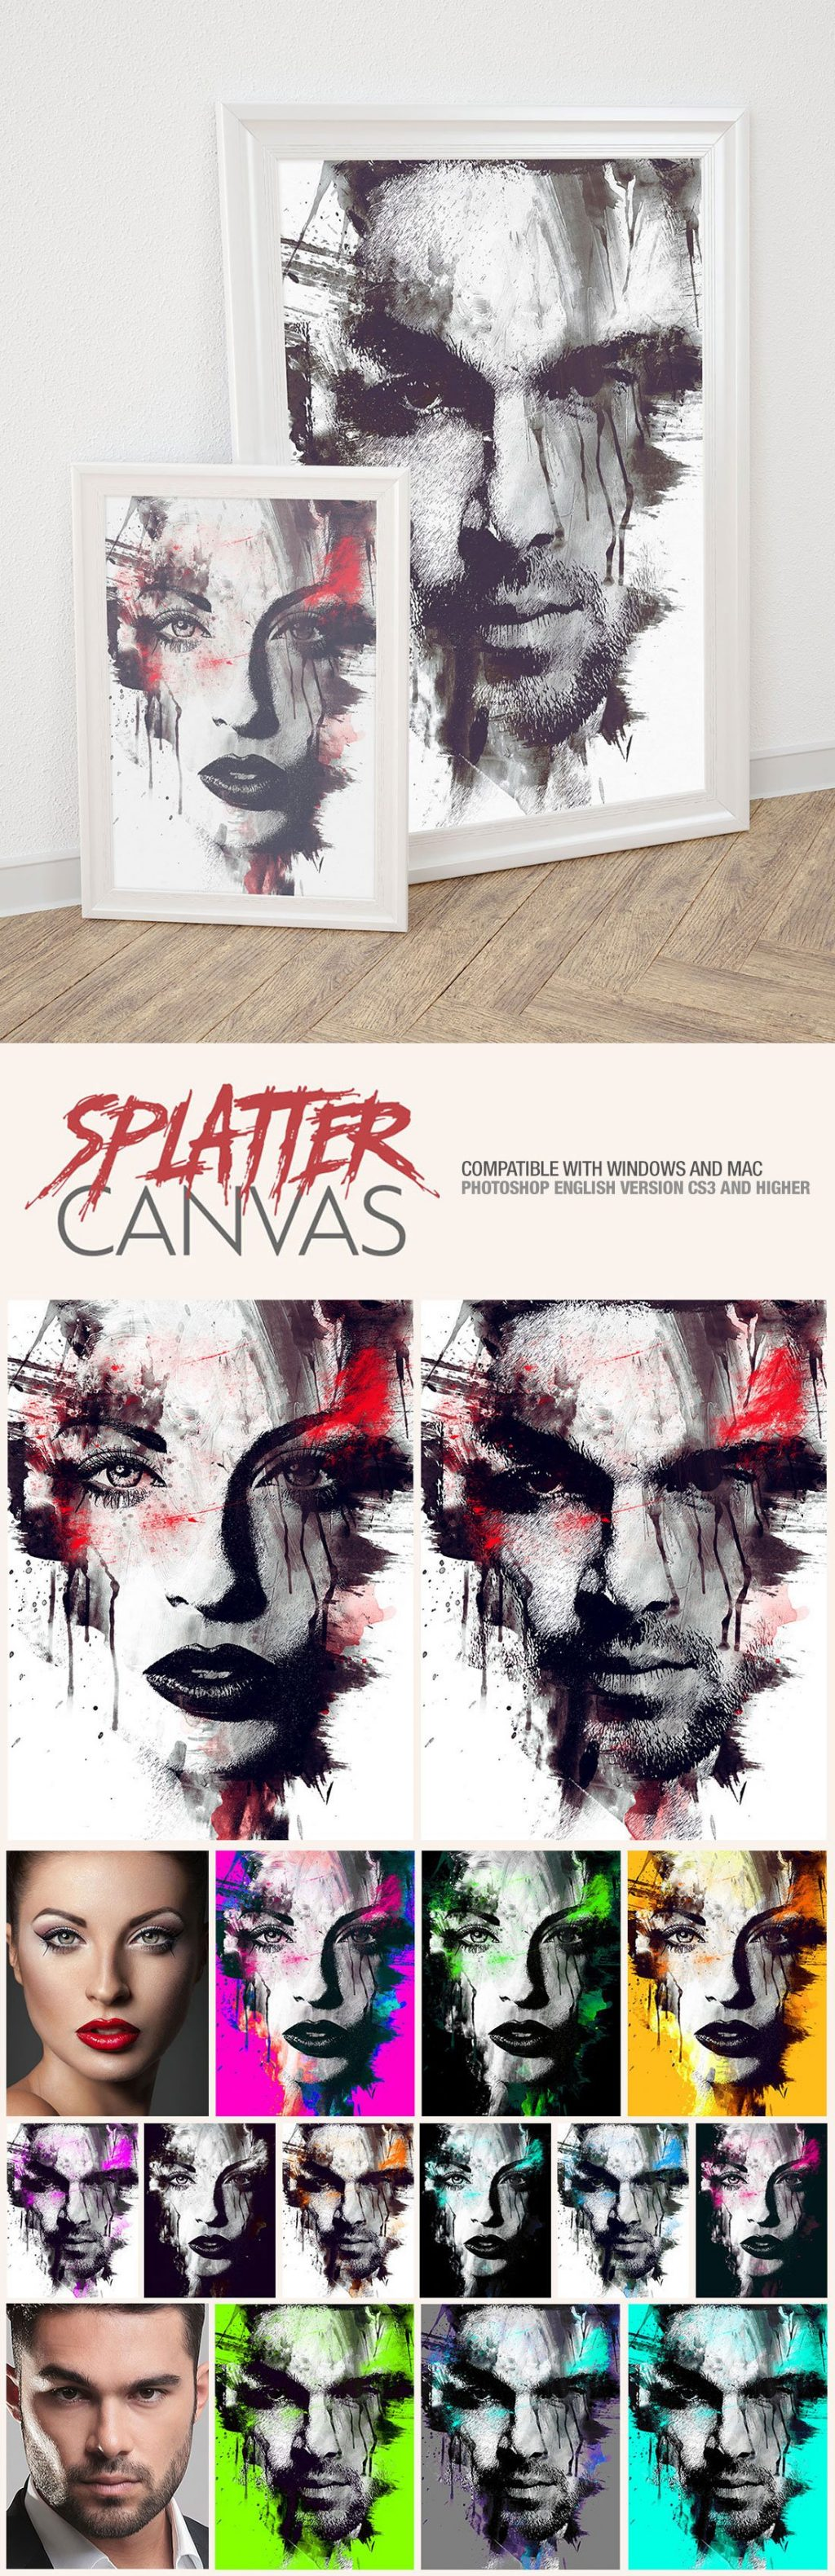 Photoshop Actions & Templates: Artistic Photo FX Bundle - splatter canvas photo template design by amorjesu